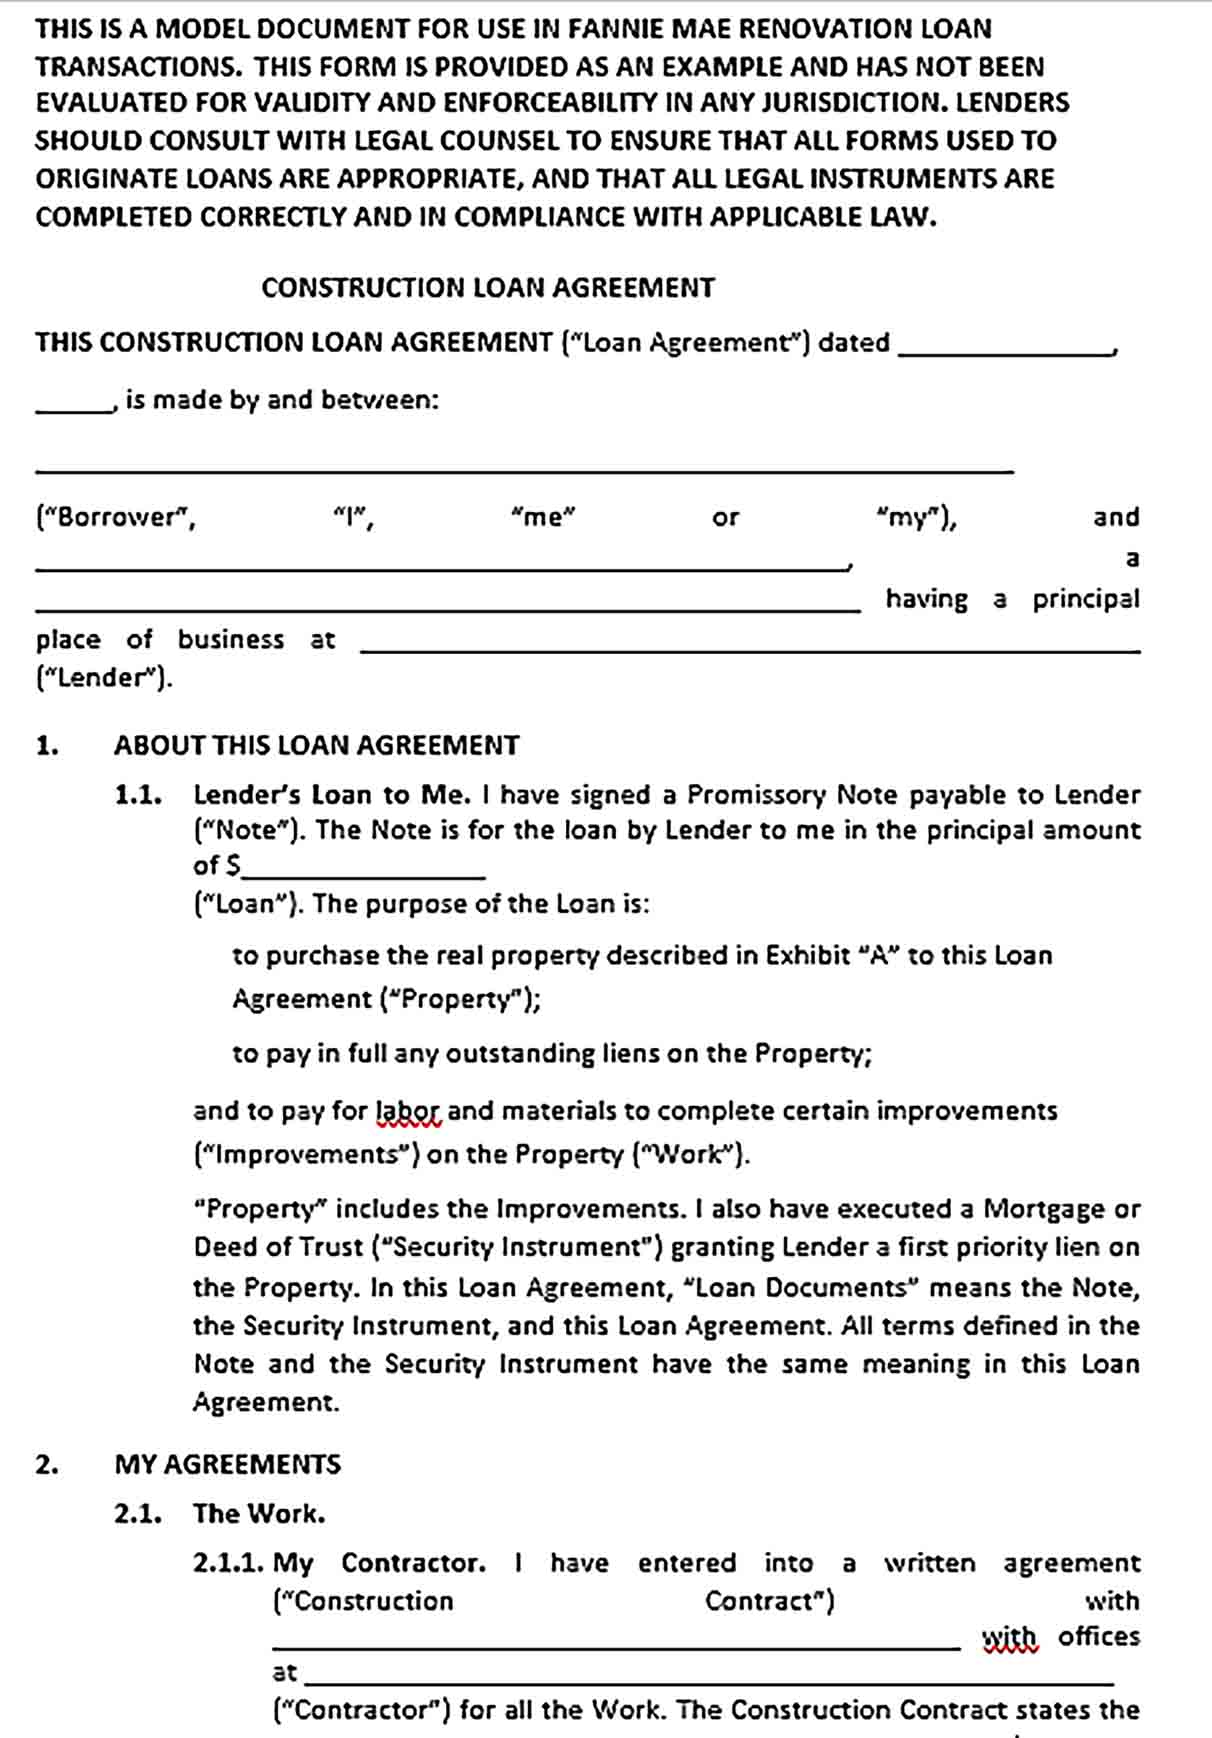 Sample Renovation And Construction Loan Agreement